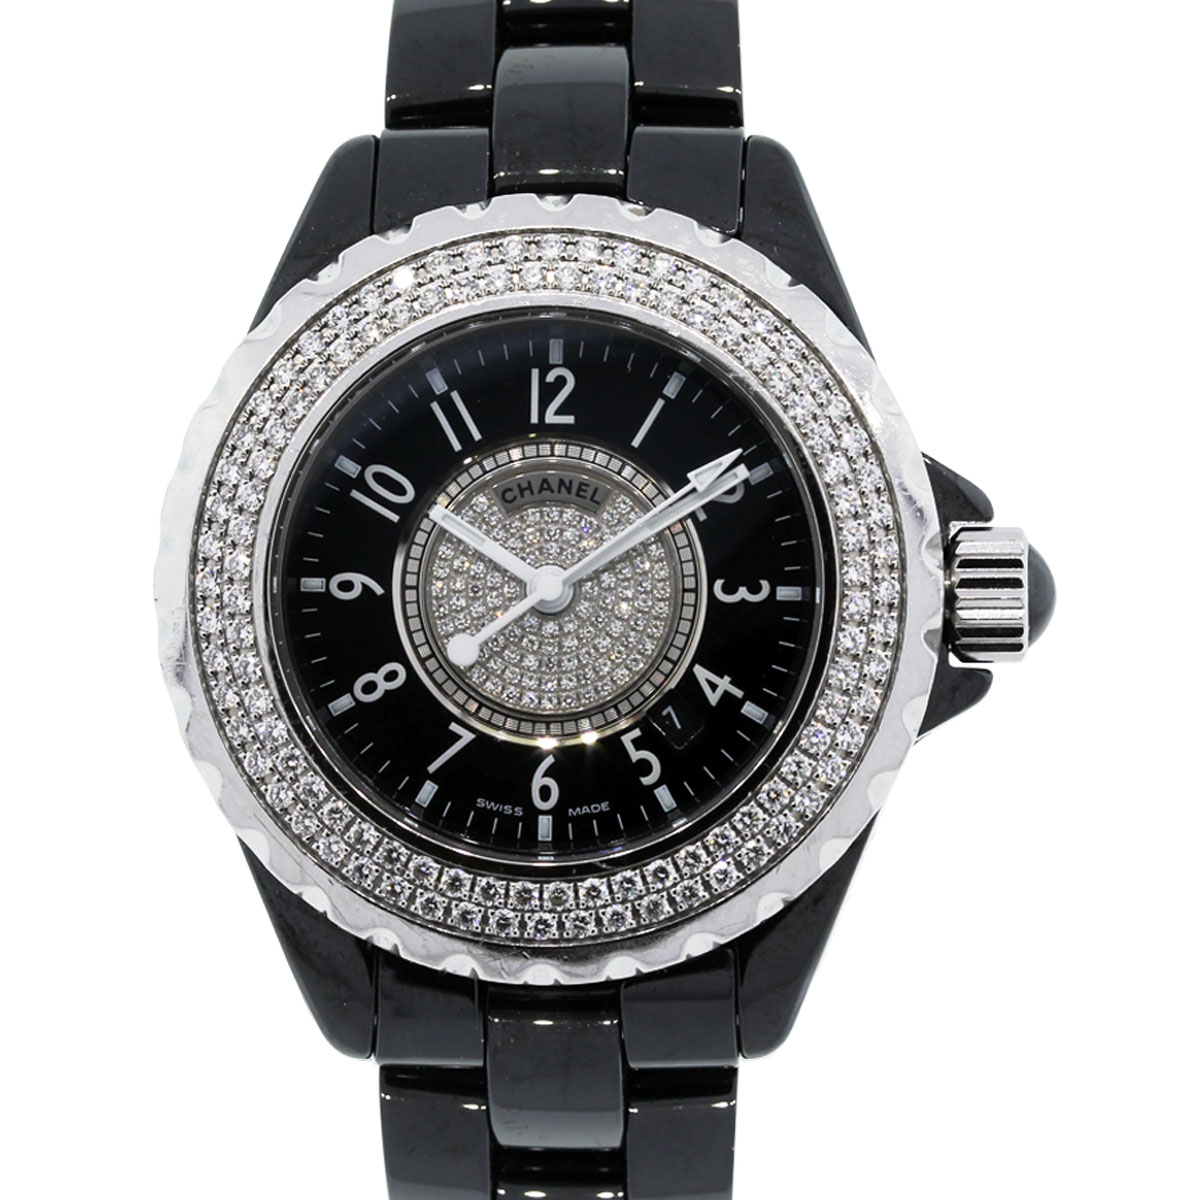 Diamond Watch Chanel H1708 J12 Diamond Bezel Black Dial Ladies Watch